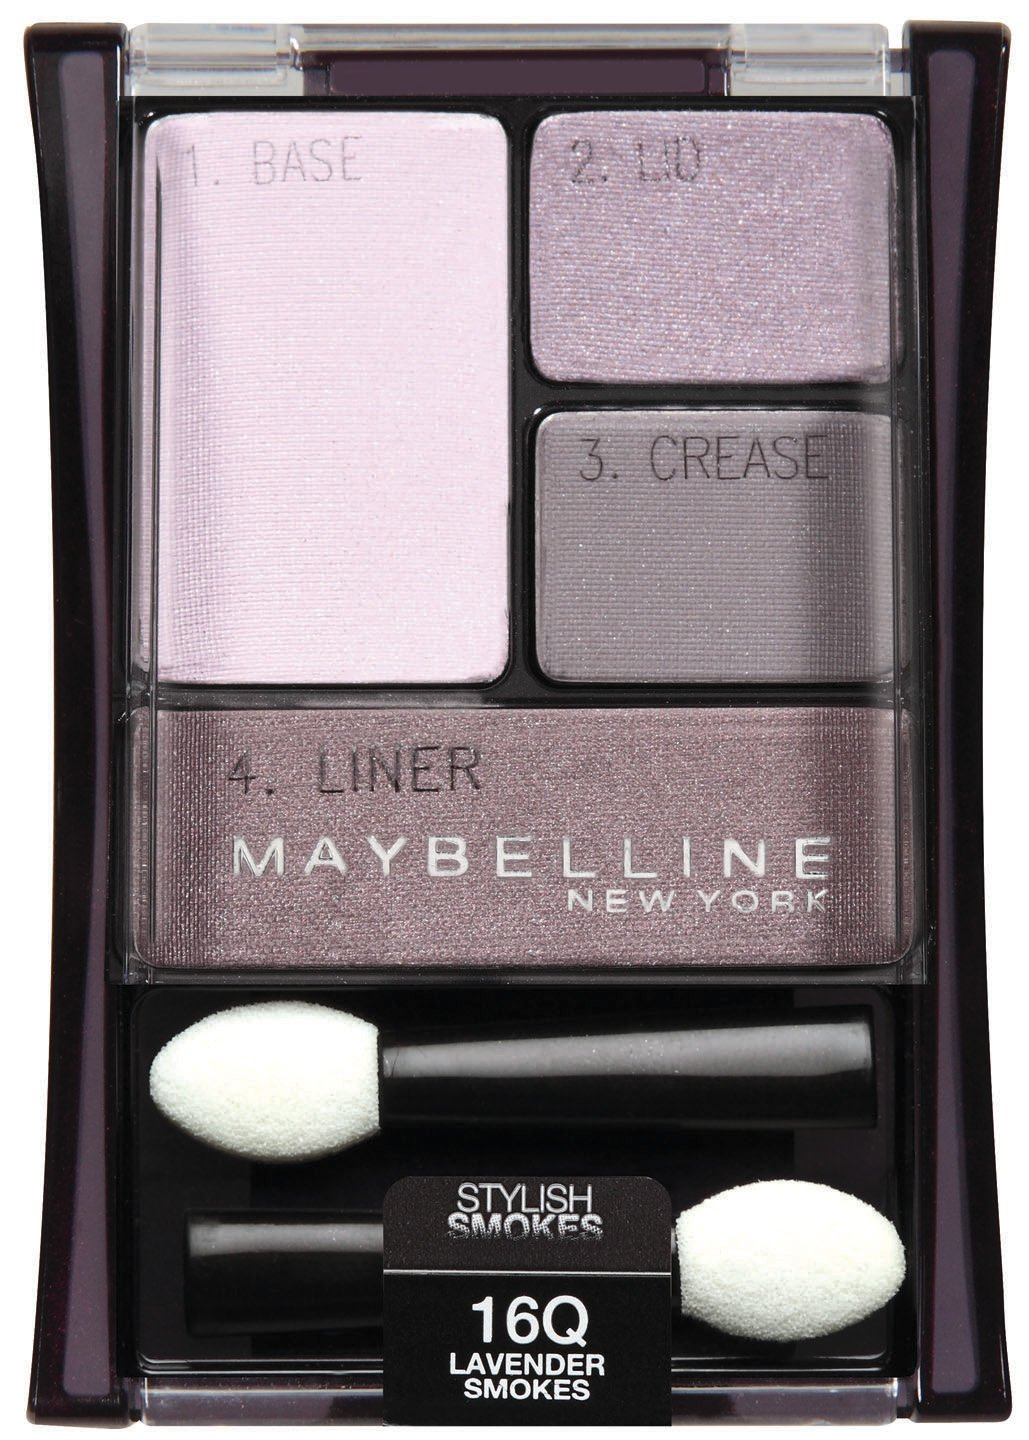 2019 year look- Stylish maybelline smokes eyeshadow quad review